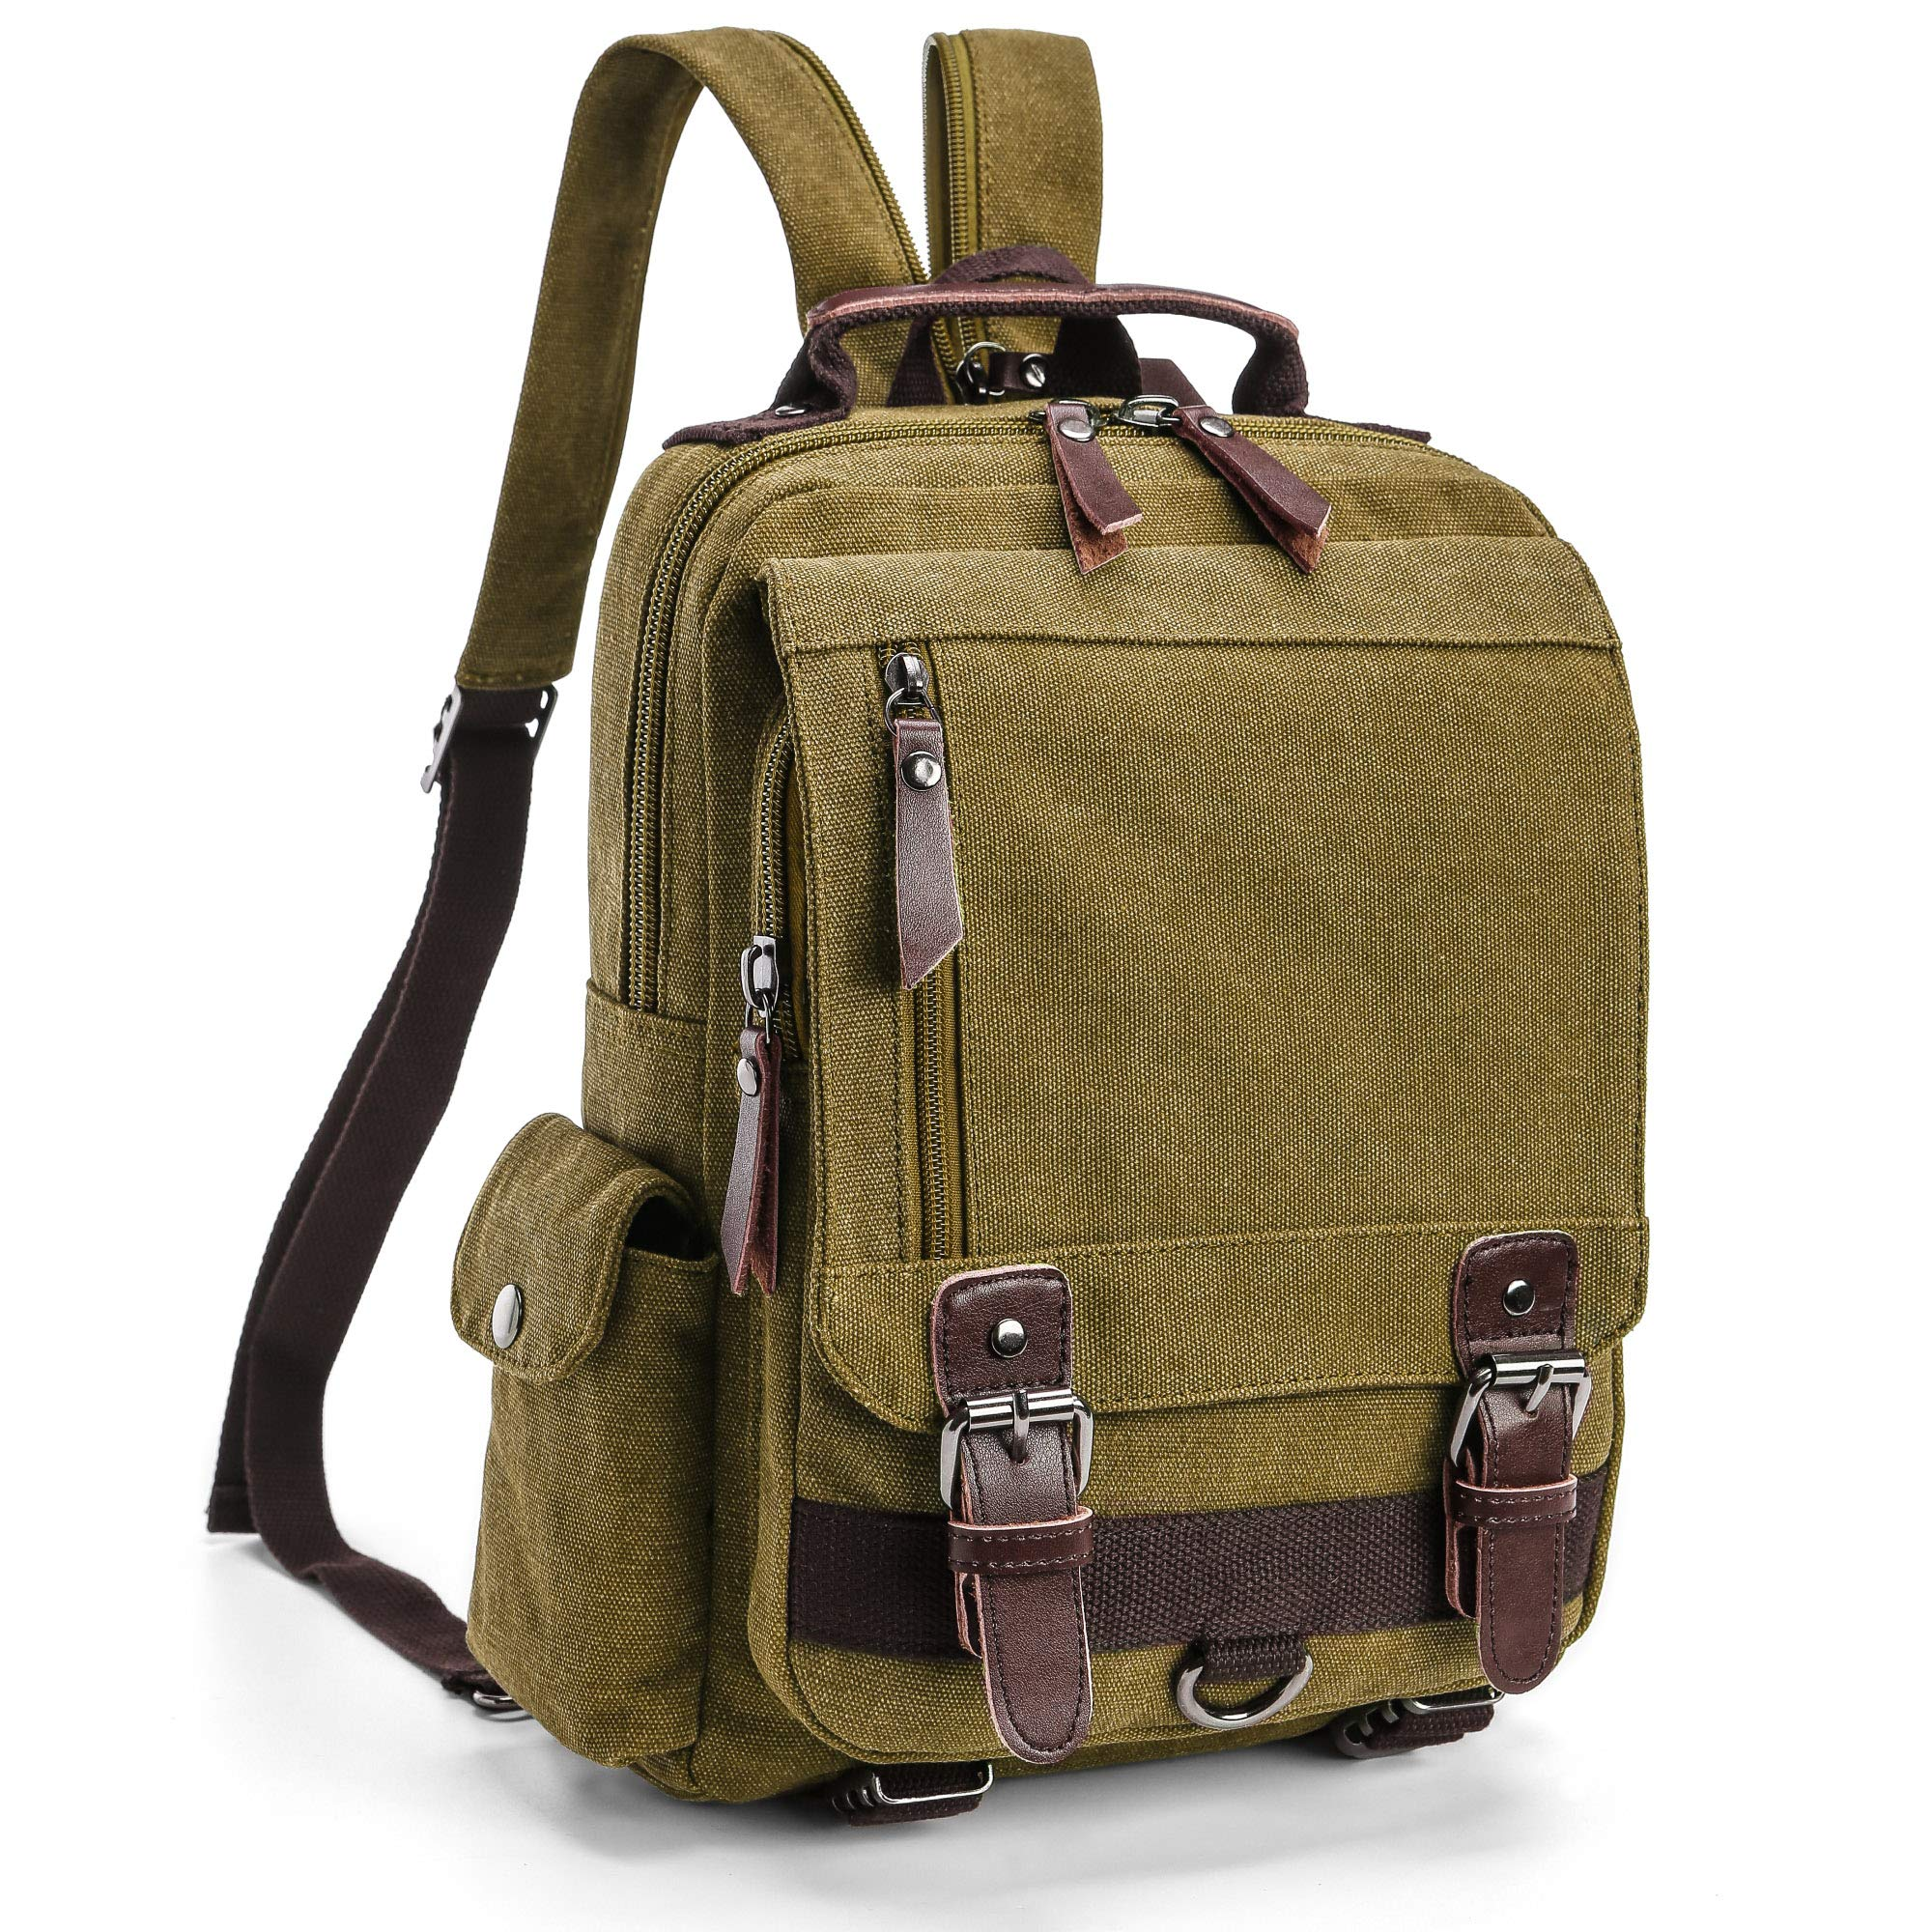 Backpack Purse for Women, F-color Dual Use Canvas Sling Bag Mini Backpack, Khaki